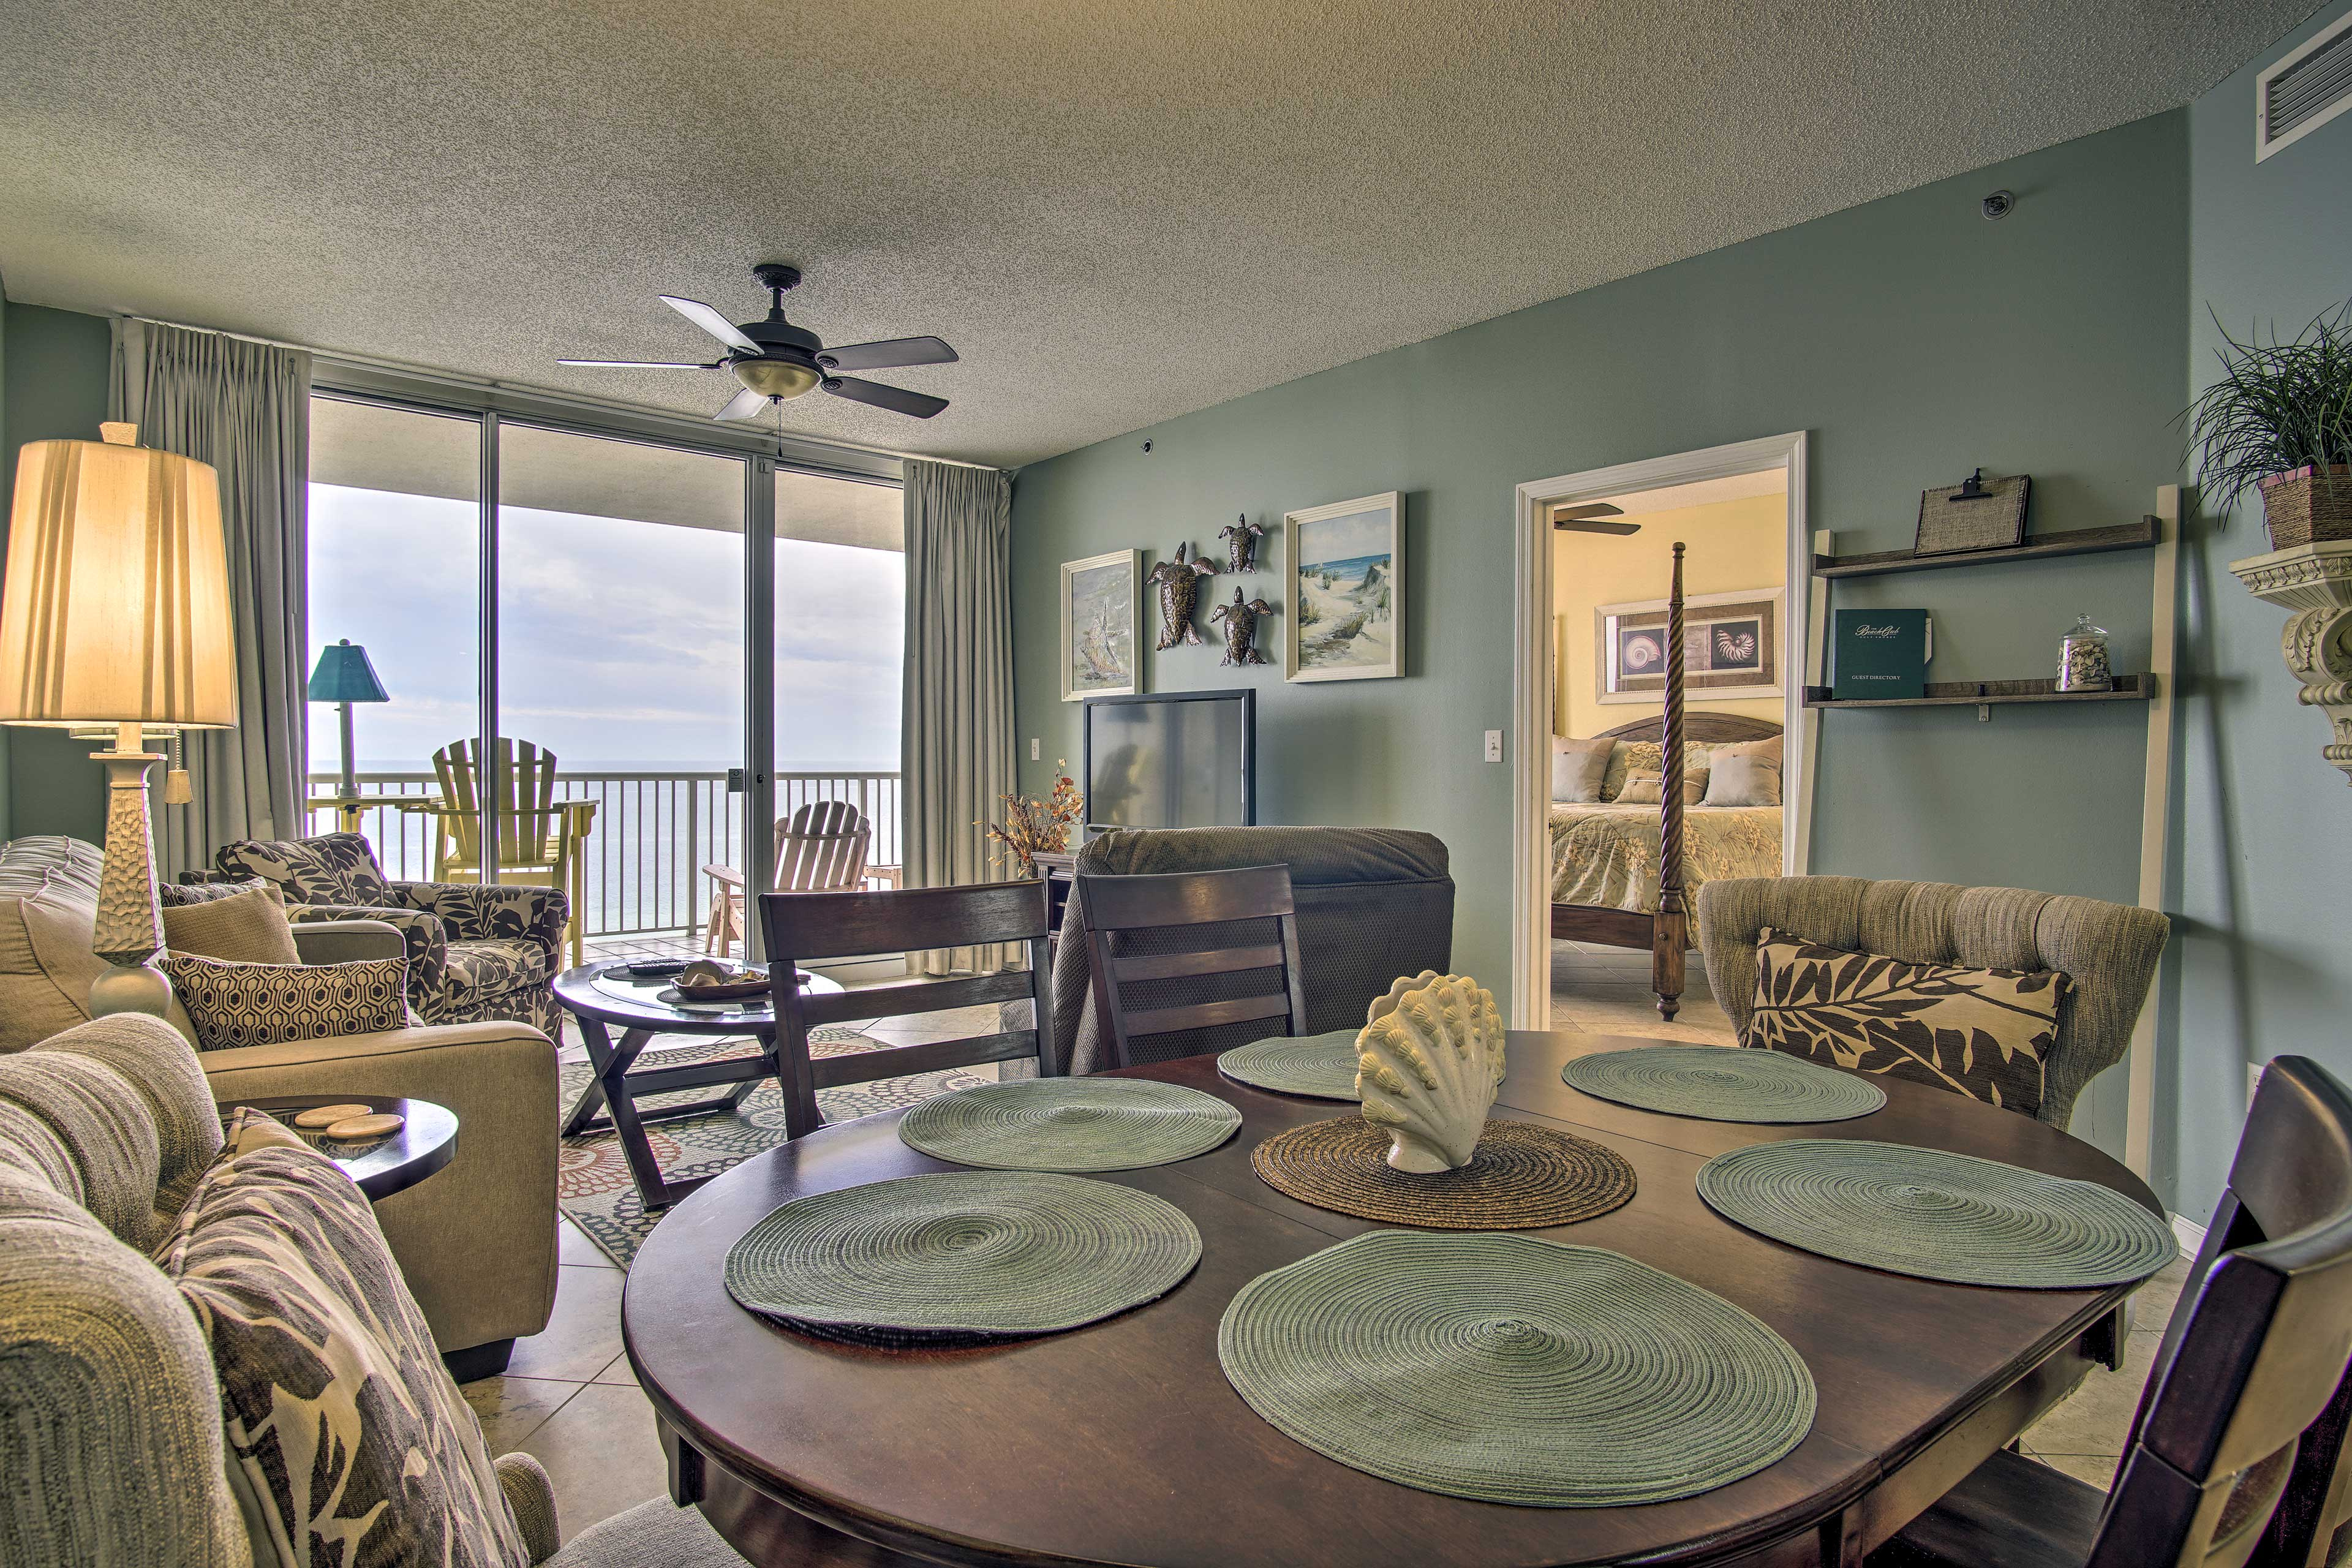 Enjoy dinner with a view of the ocean!